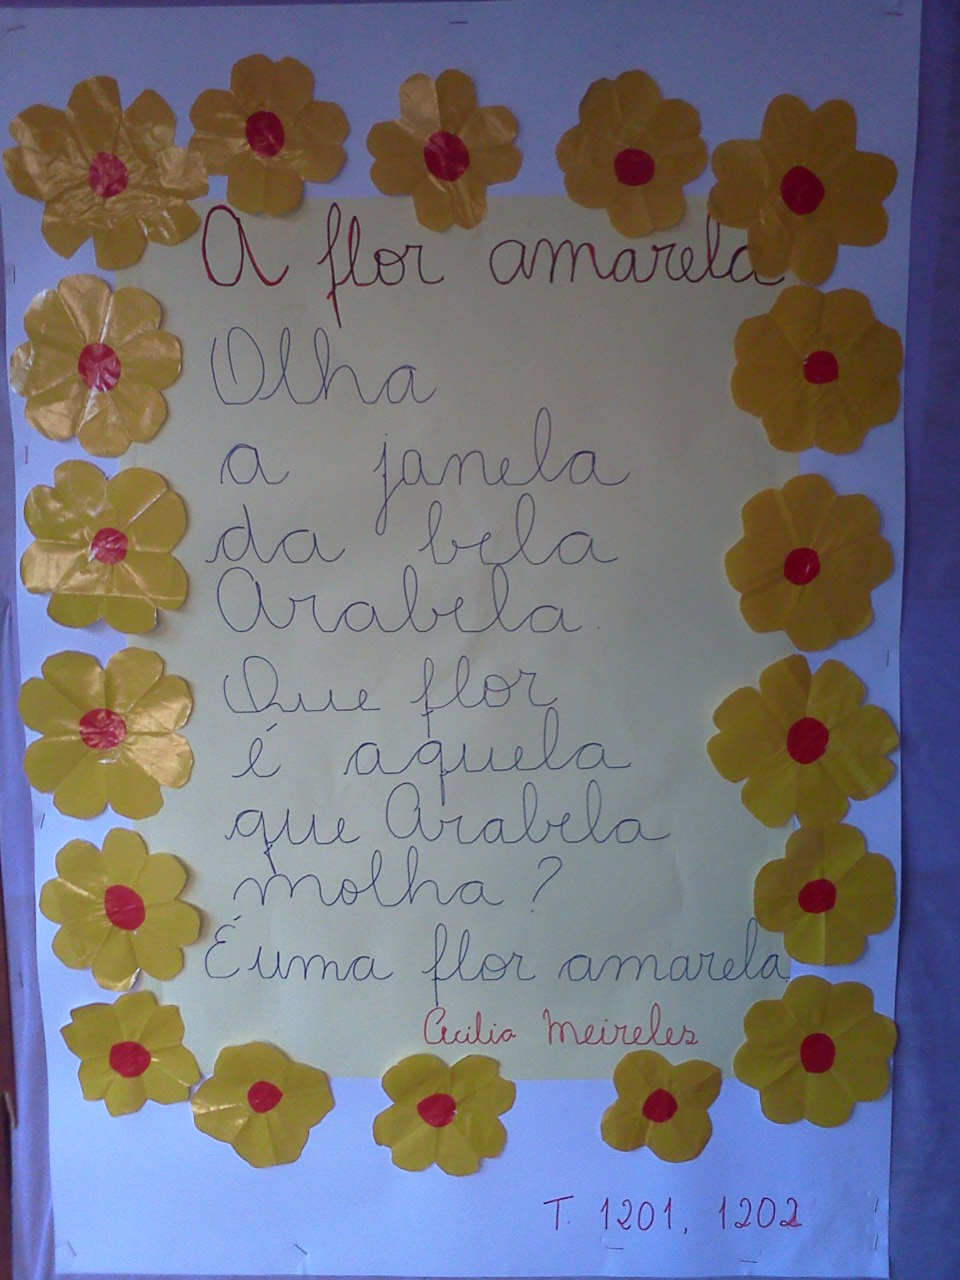 flor de jardim amarela:Download image Amarela Poesia PC, Android, iPhone and iPad. Wallpapers